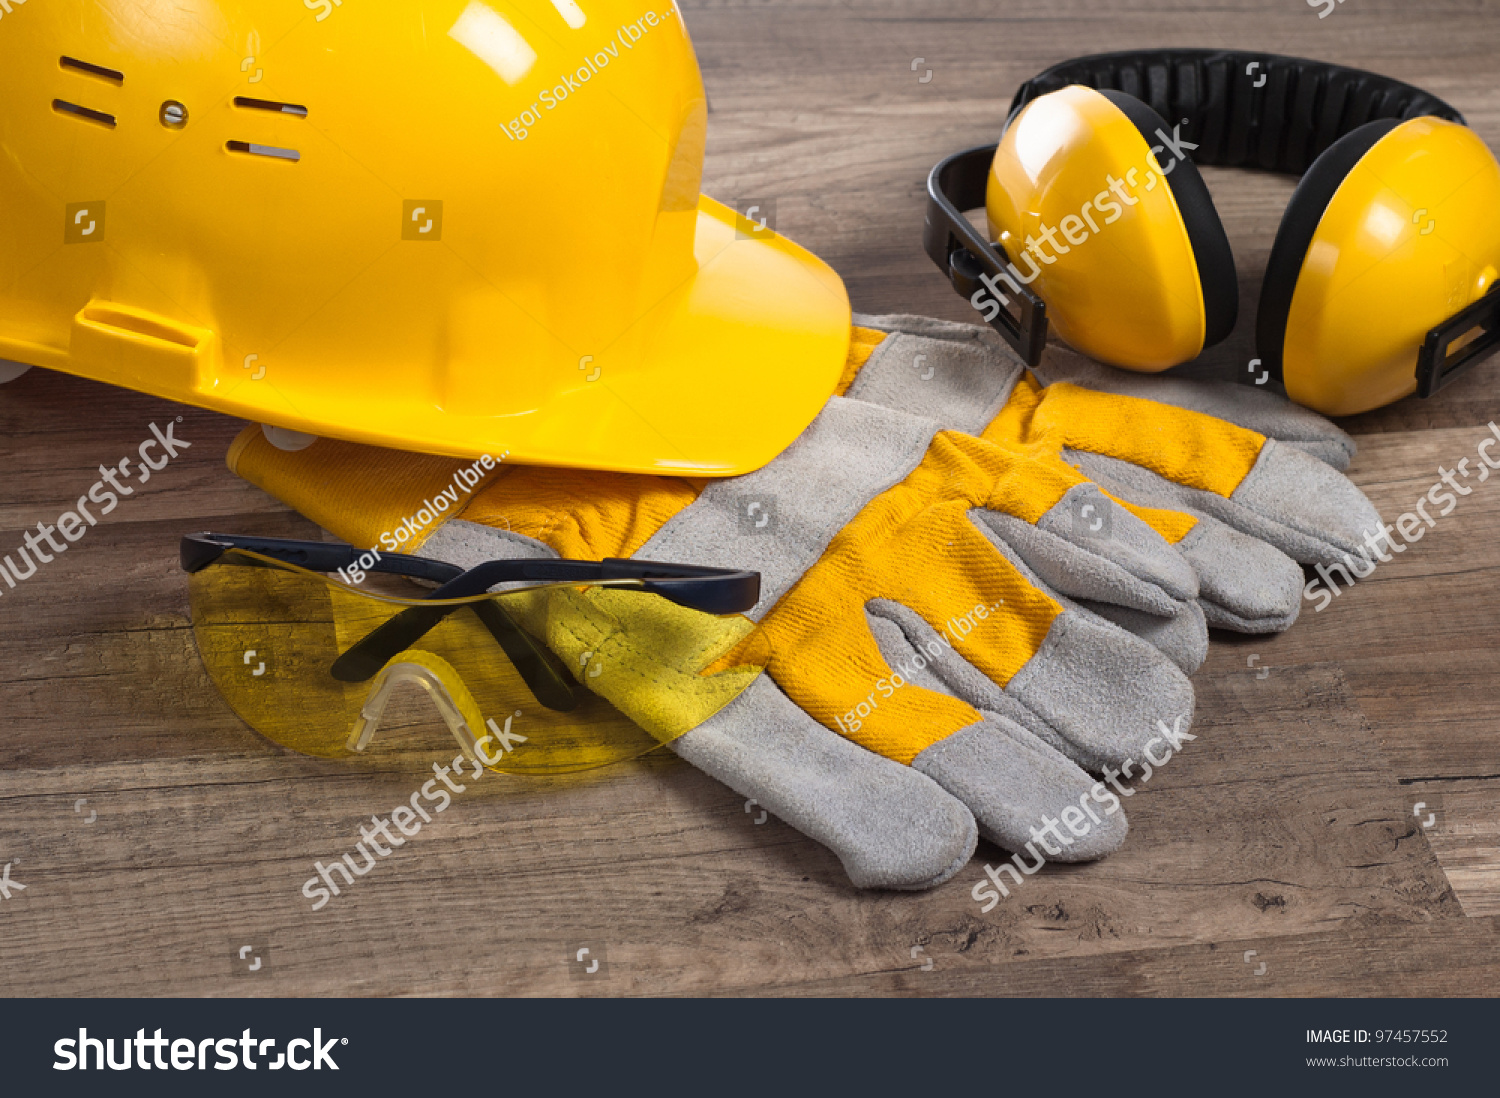 essay on safety of environment Case studies/white papers checklists/forms here are 11 tips for effective workplace housekeeping 1 safety+health welcomes comments that promote respectful.